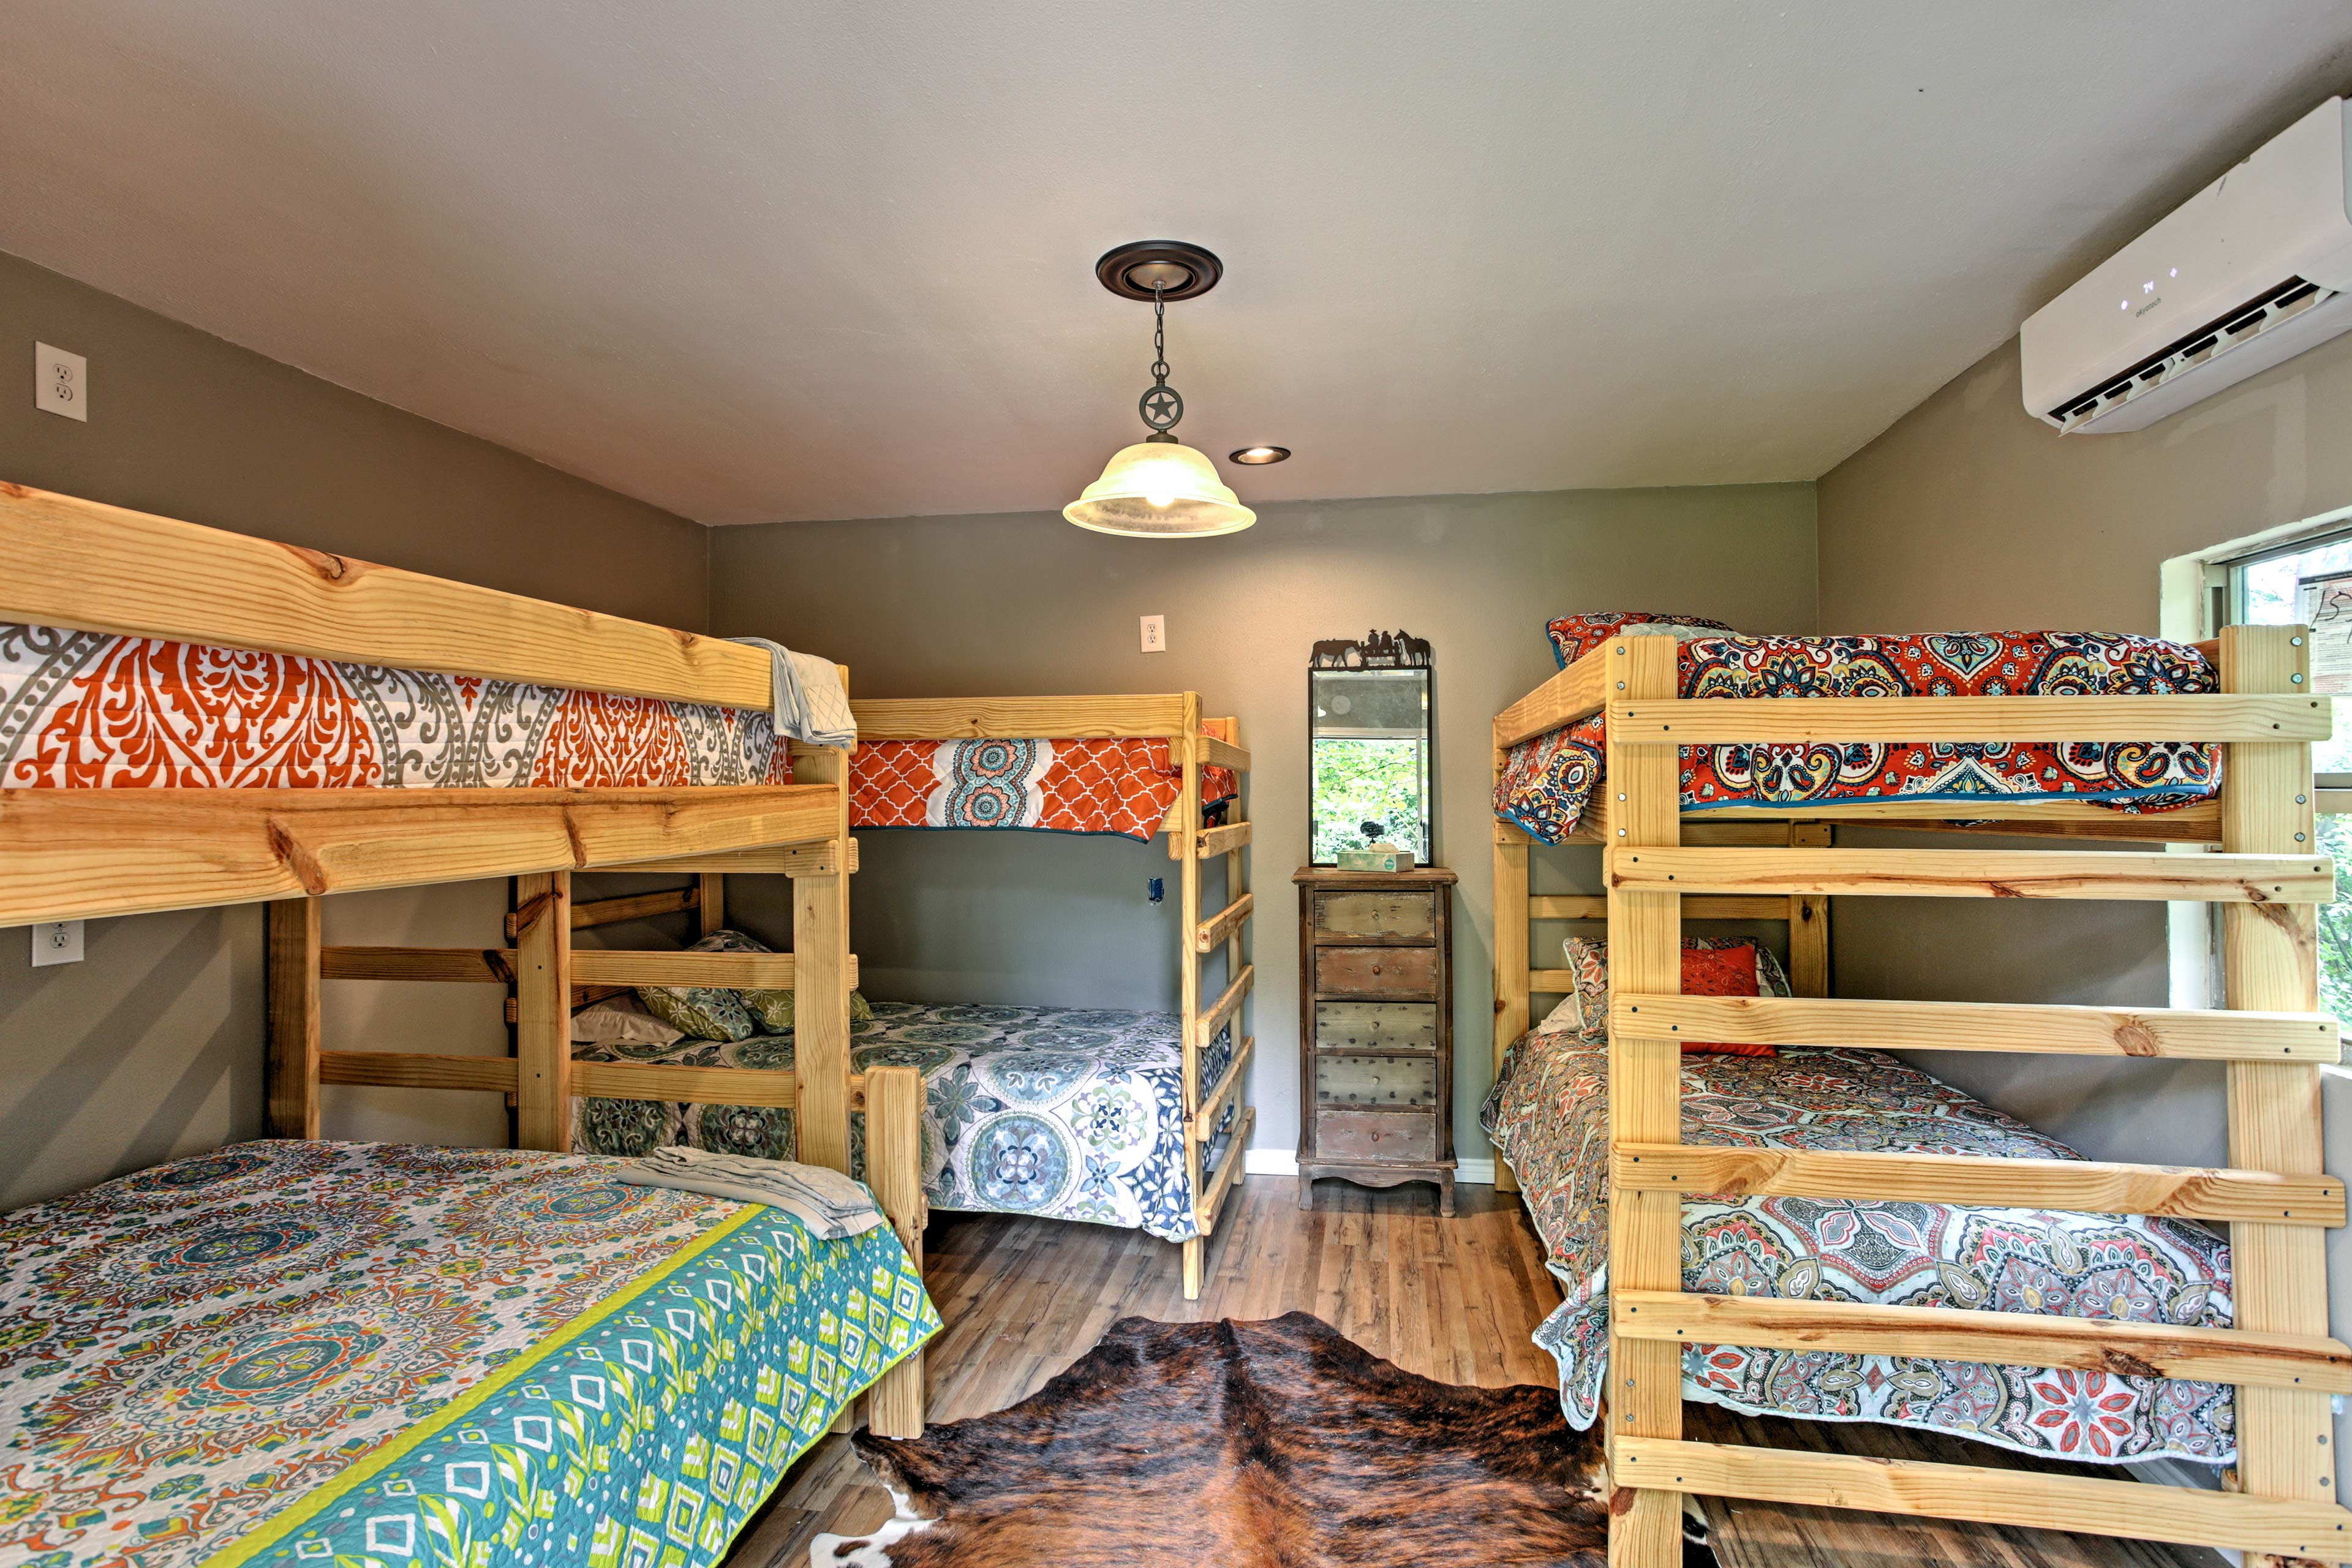 Aptly named, the bunkroom features 3 bunk beds, sleeping 8.